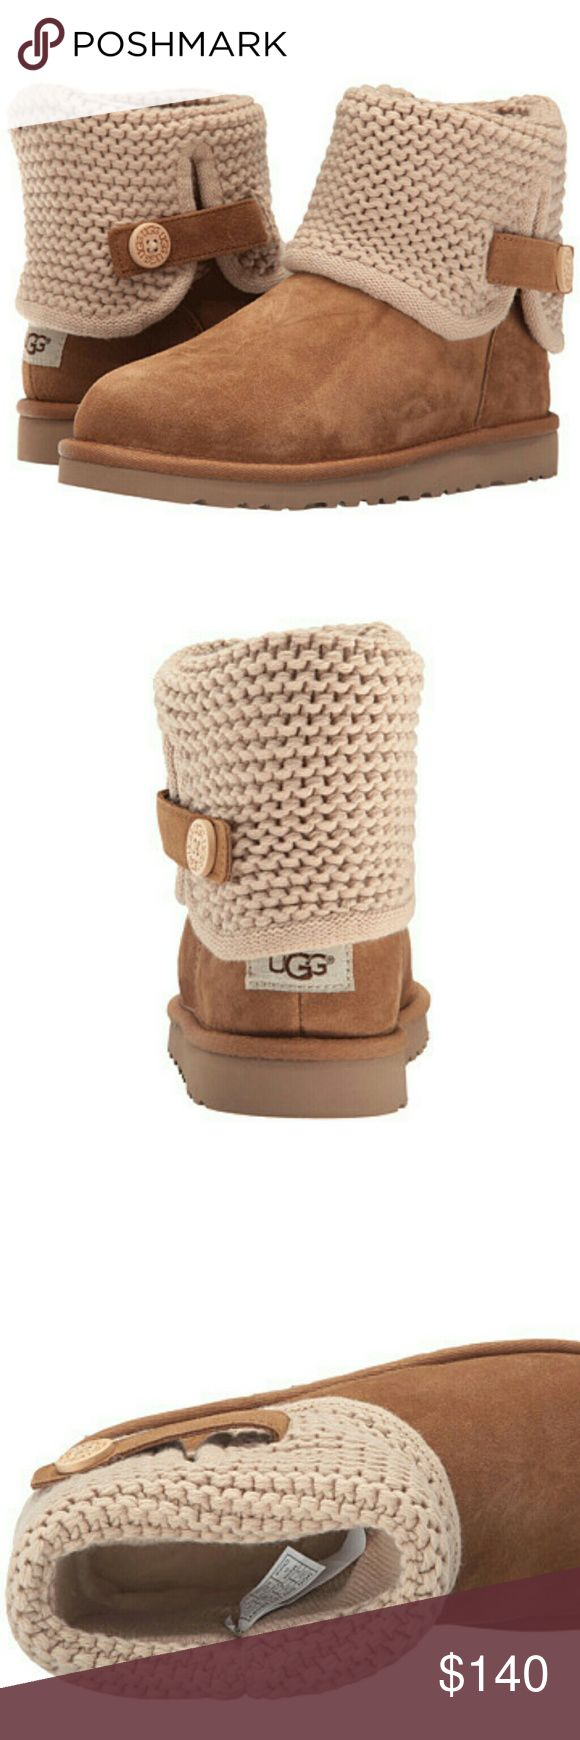 New UGG Boots 100% authentic brand new pair of UGG boots kids in a size 5 ( women's 7 ) . They come with the original box, wrapping and cards!   100% fine woolen sheepskin breathes, wicking heat and moisture away to keep little feet dry and warm.  If you have any questions please let me know thank you!    tags: boots boot bootie uggs Australia butte warm shoes youth kids 2.5 3 3.5 4 marmot adidas Canada goose Northface nike warm weather knit UGG Shoes Winter & Rain Boots